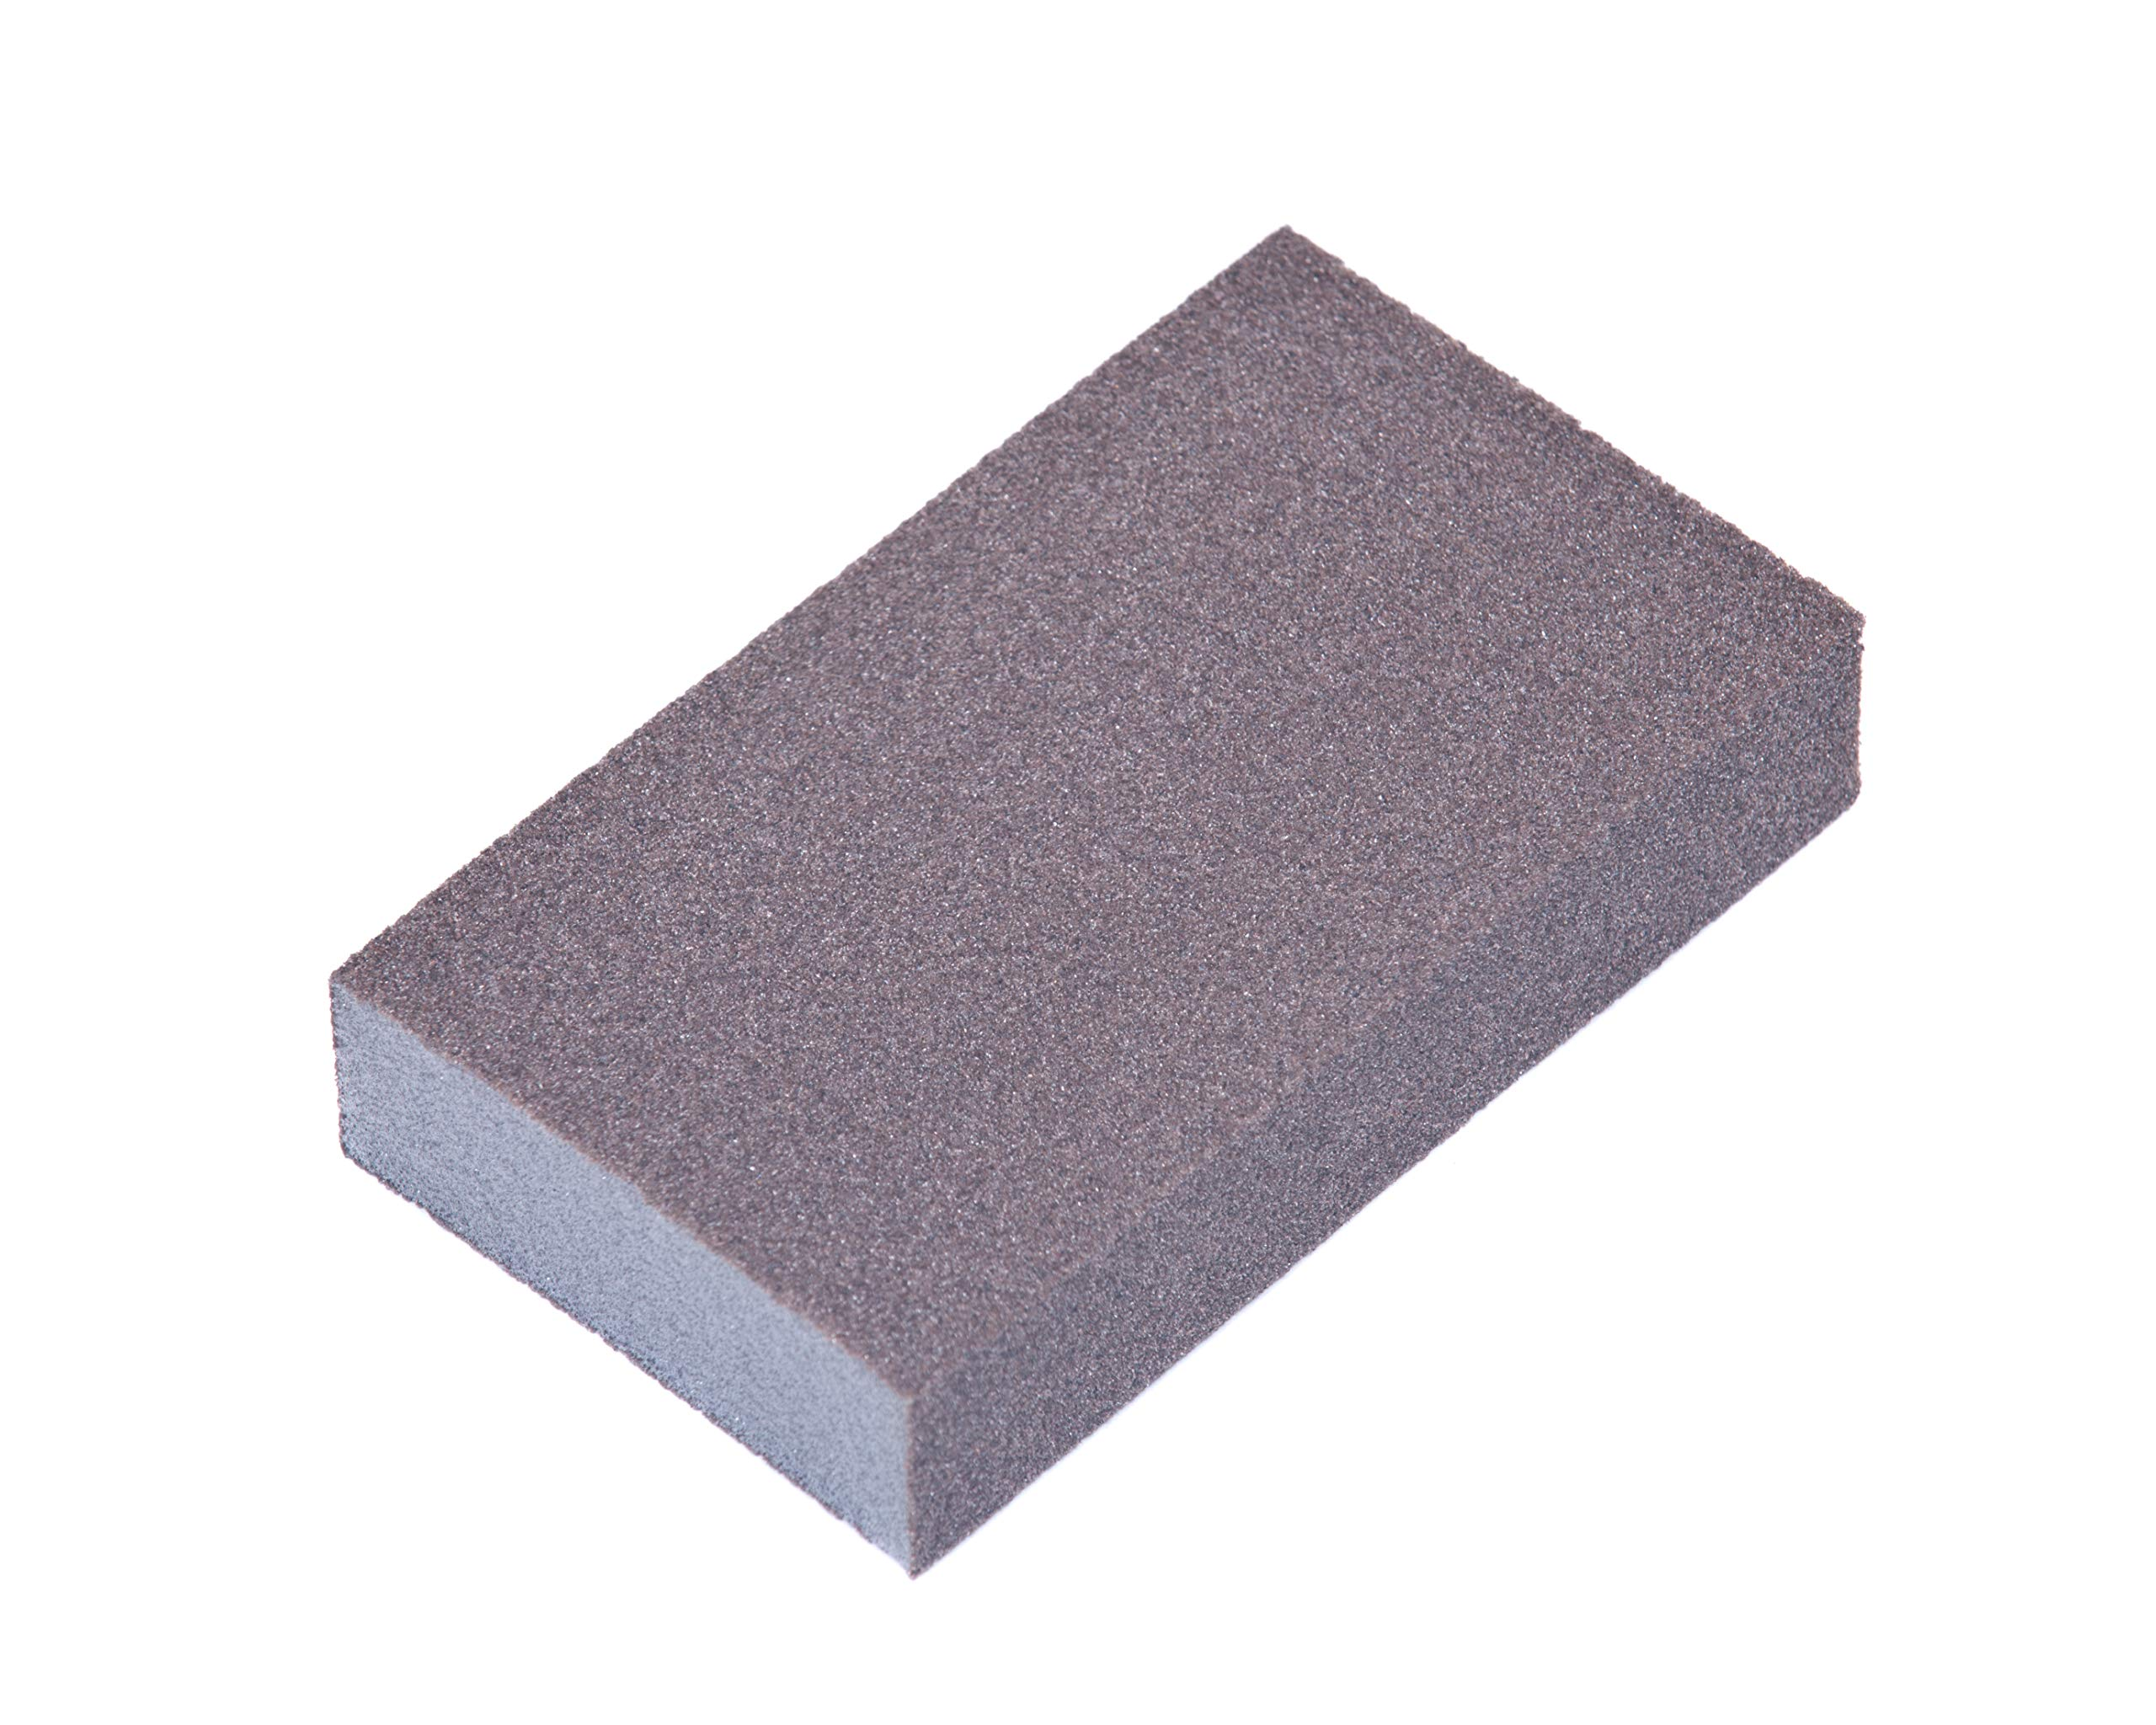 Stac Industrial 3'' x 4'' x 1/2'' 2-Sided Sealer Sanding Sponge - 400 Pieces Per Box